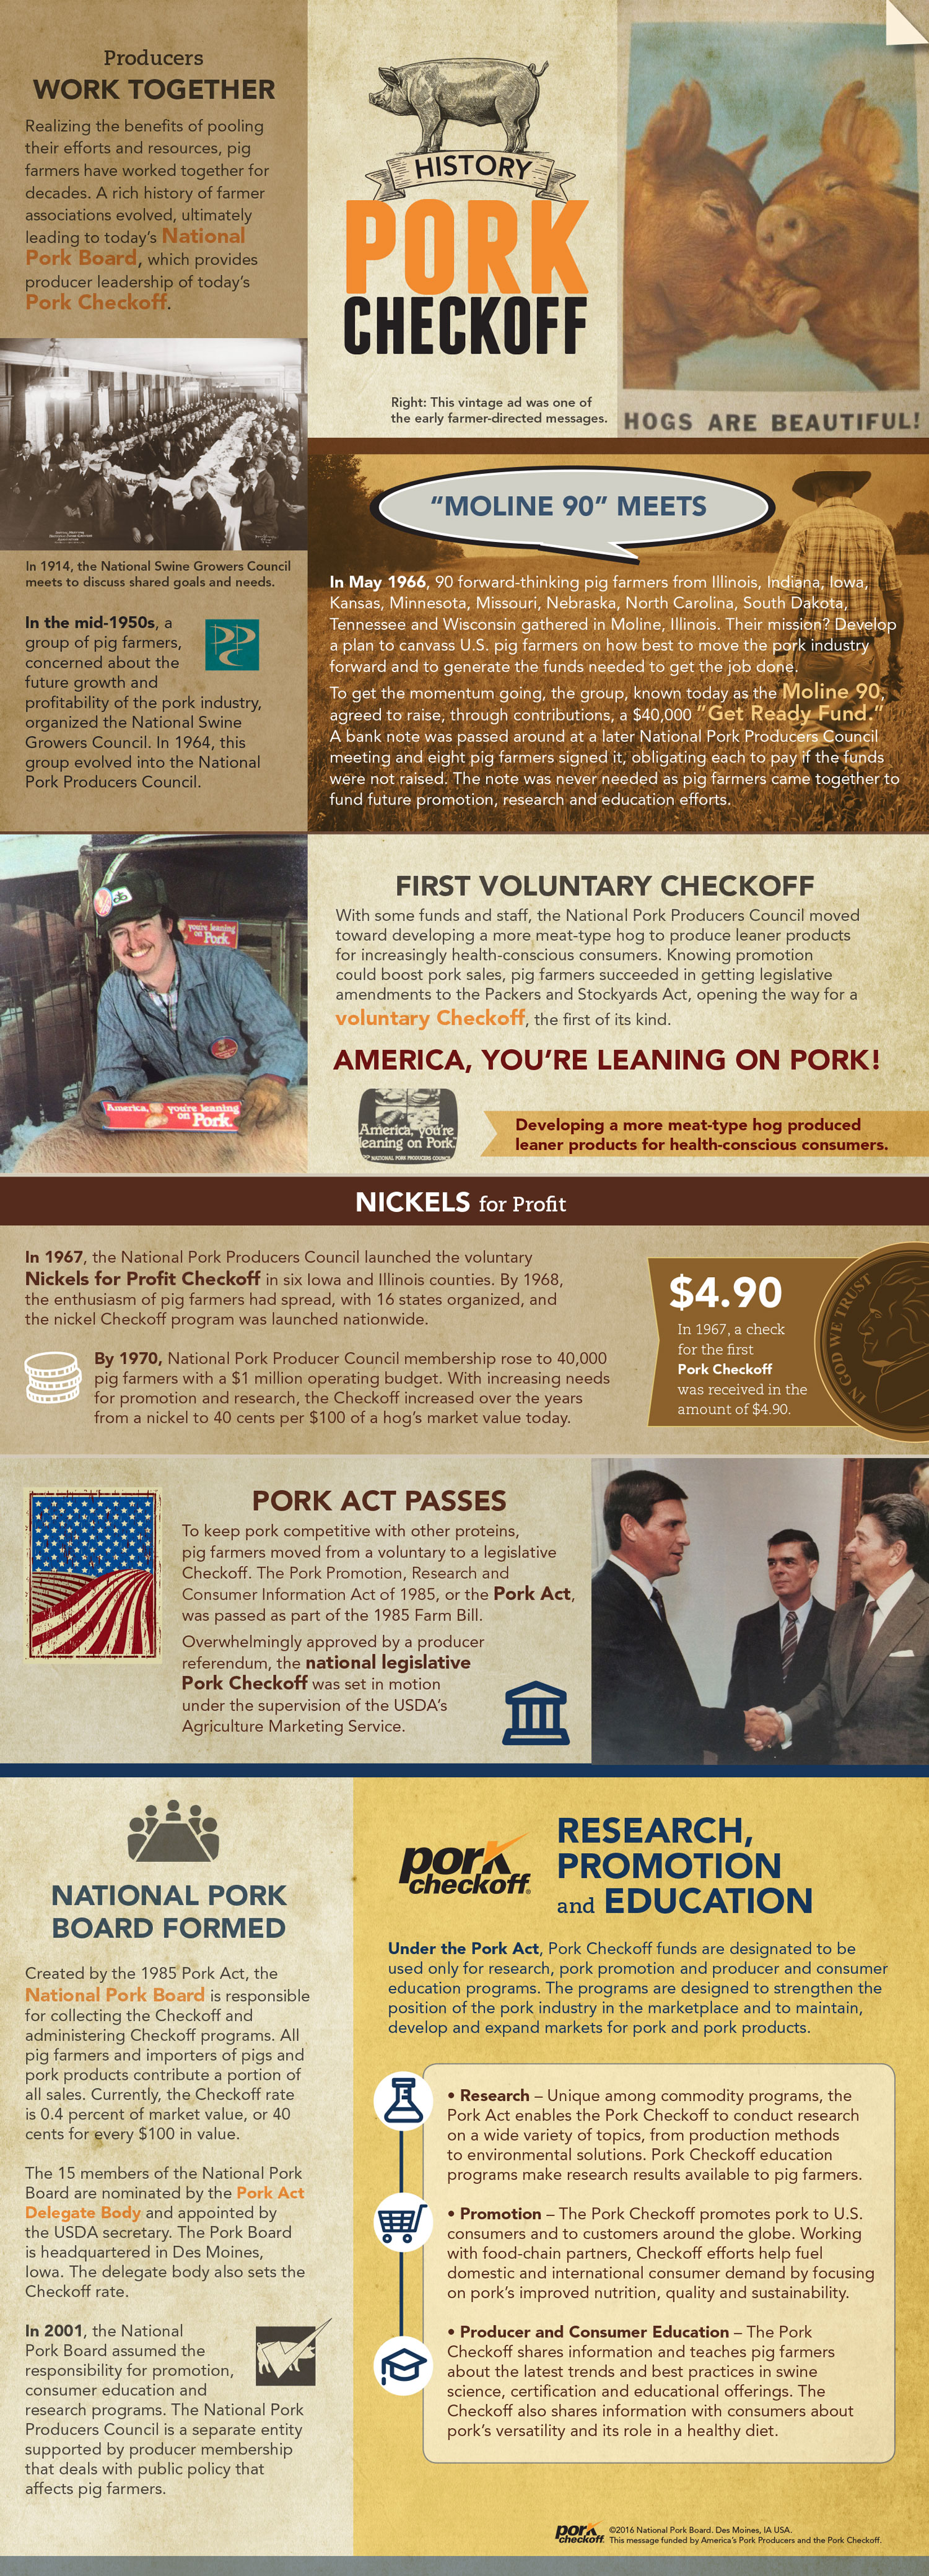 pork checkoff history